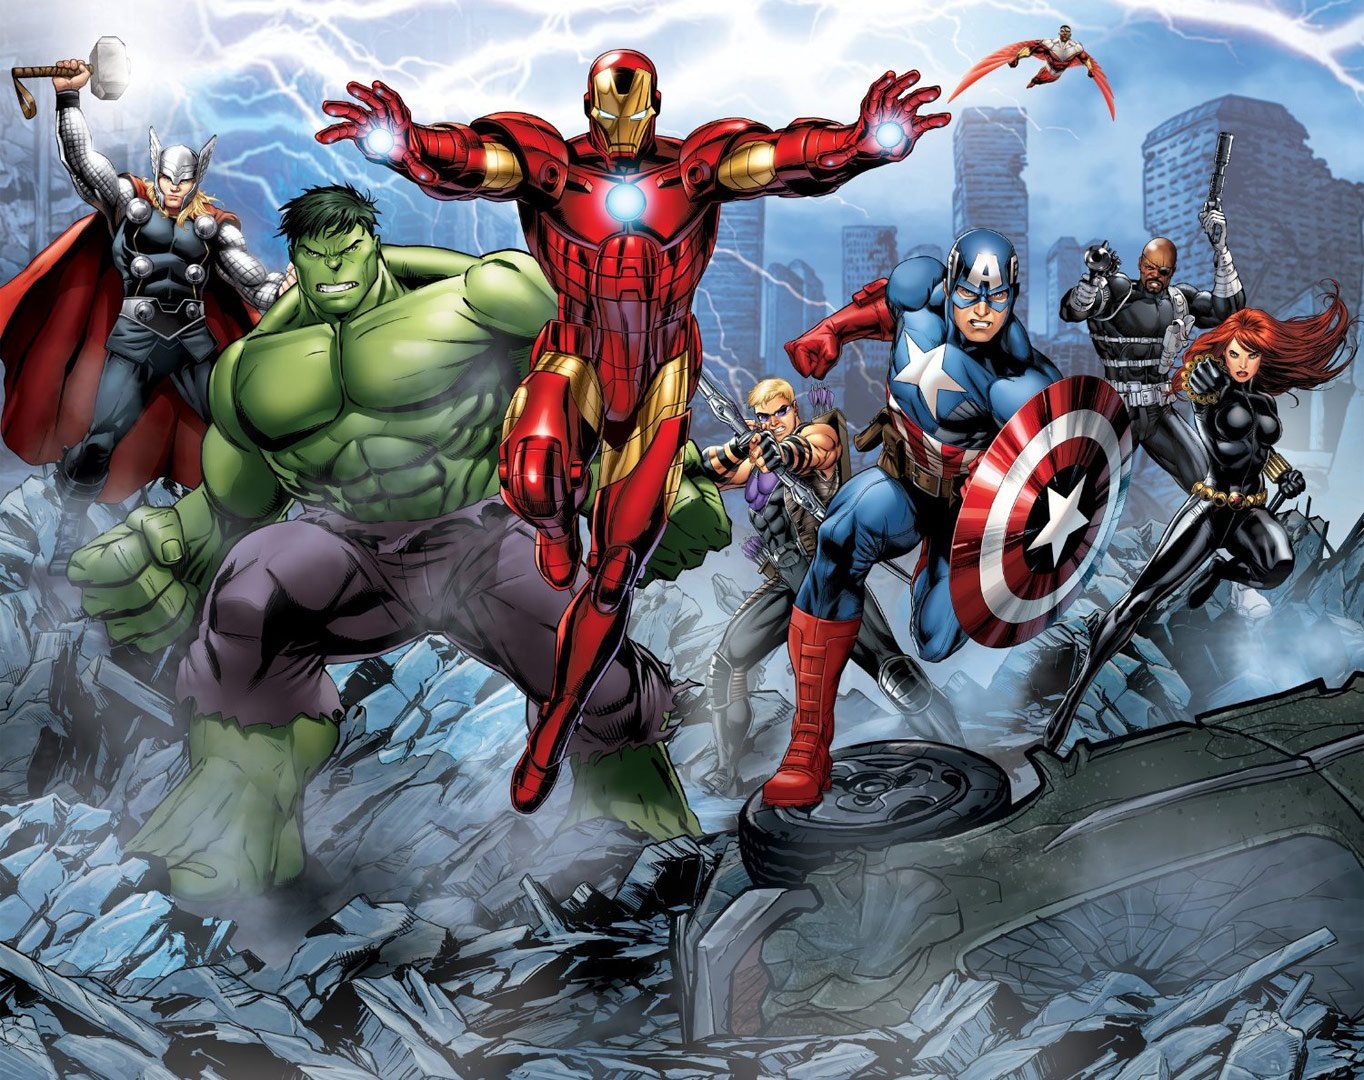 c1bac8339e7 an epic battle in your home with the Avengers Assemble Full Wall Mural  1364x1080